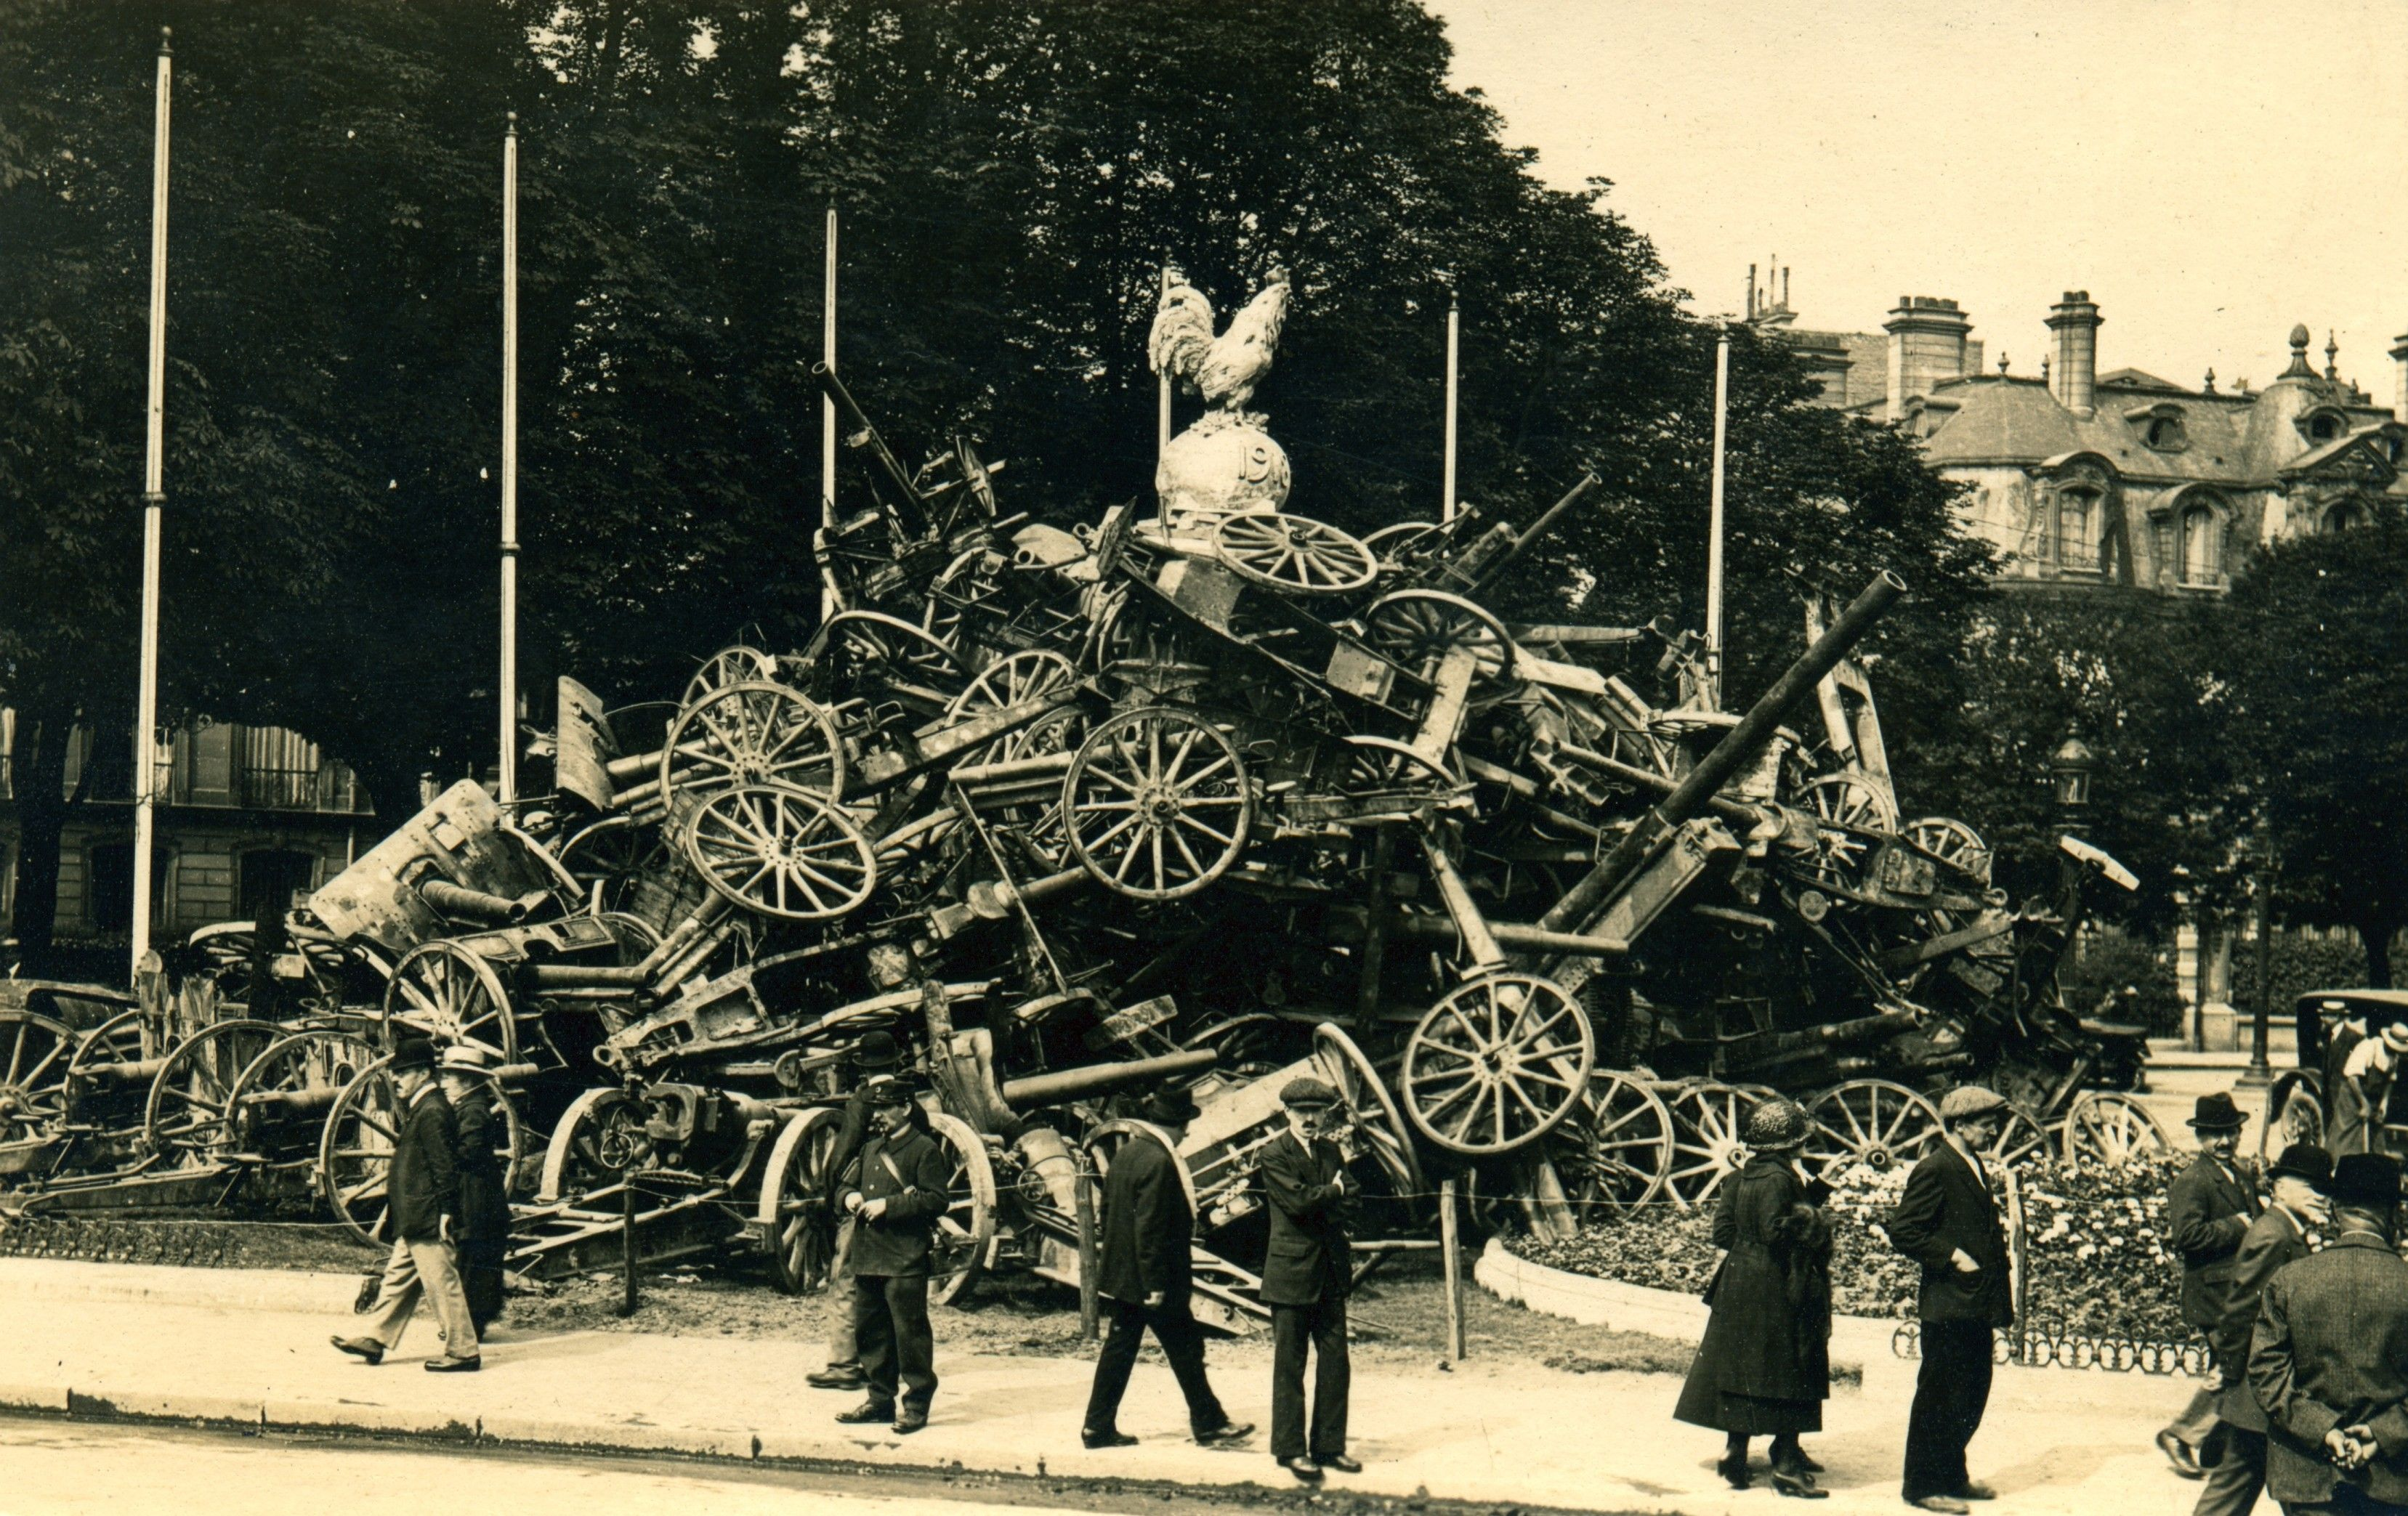 Pyramid of Cannons, WWI Victory celebrations, Champs Elysees, Paris